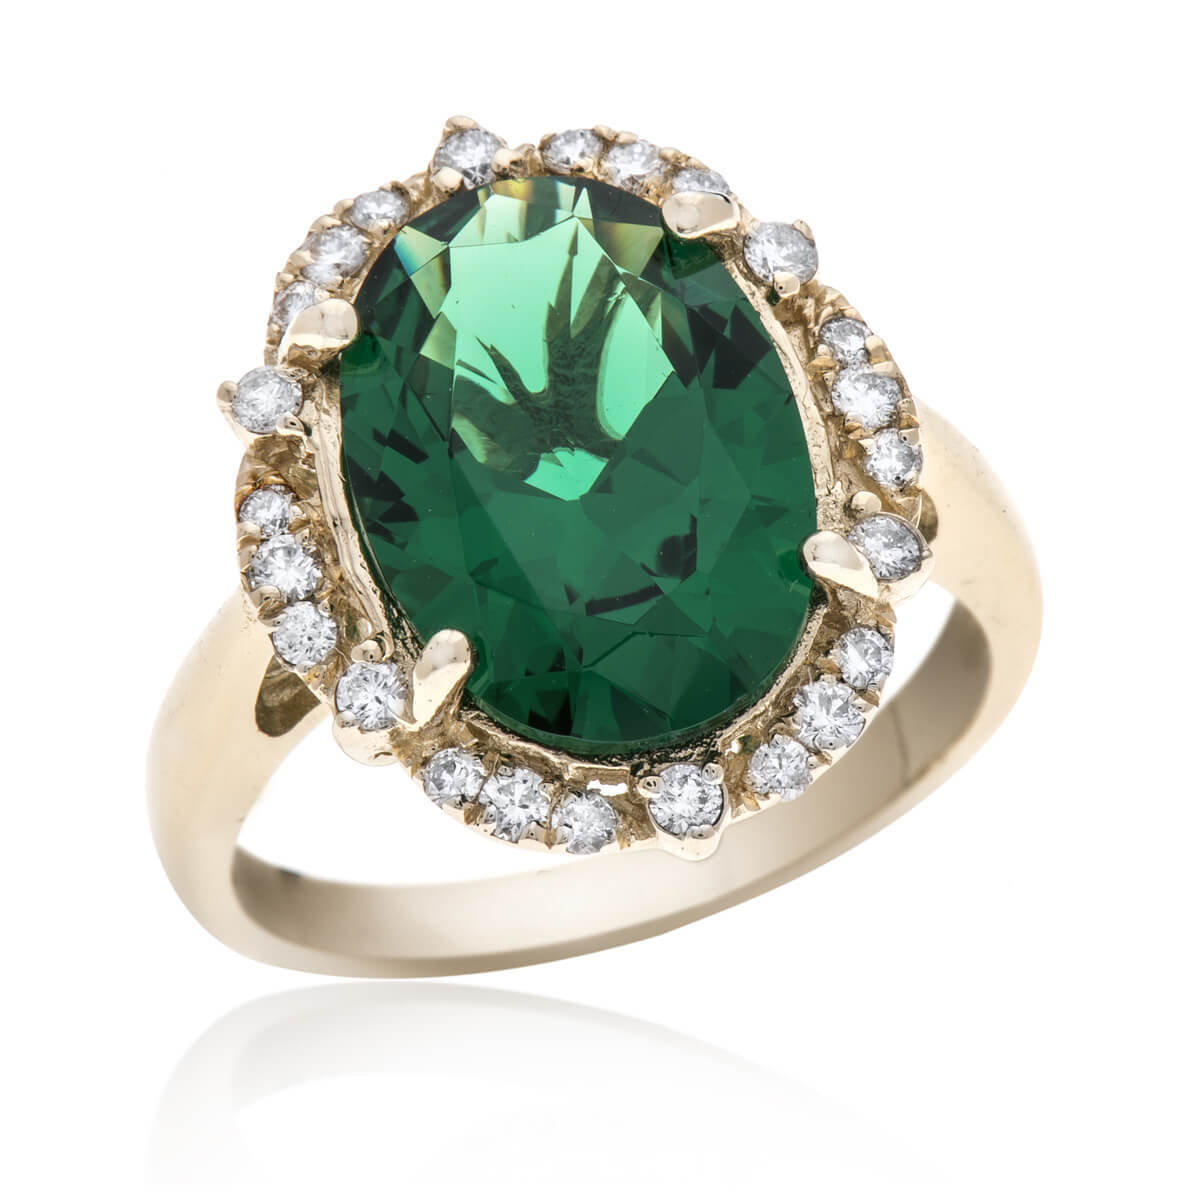 Emerald_Diamonds_Ring_RD2756EMSY_1